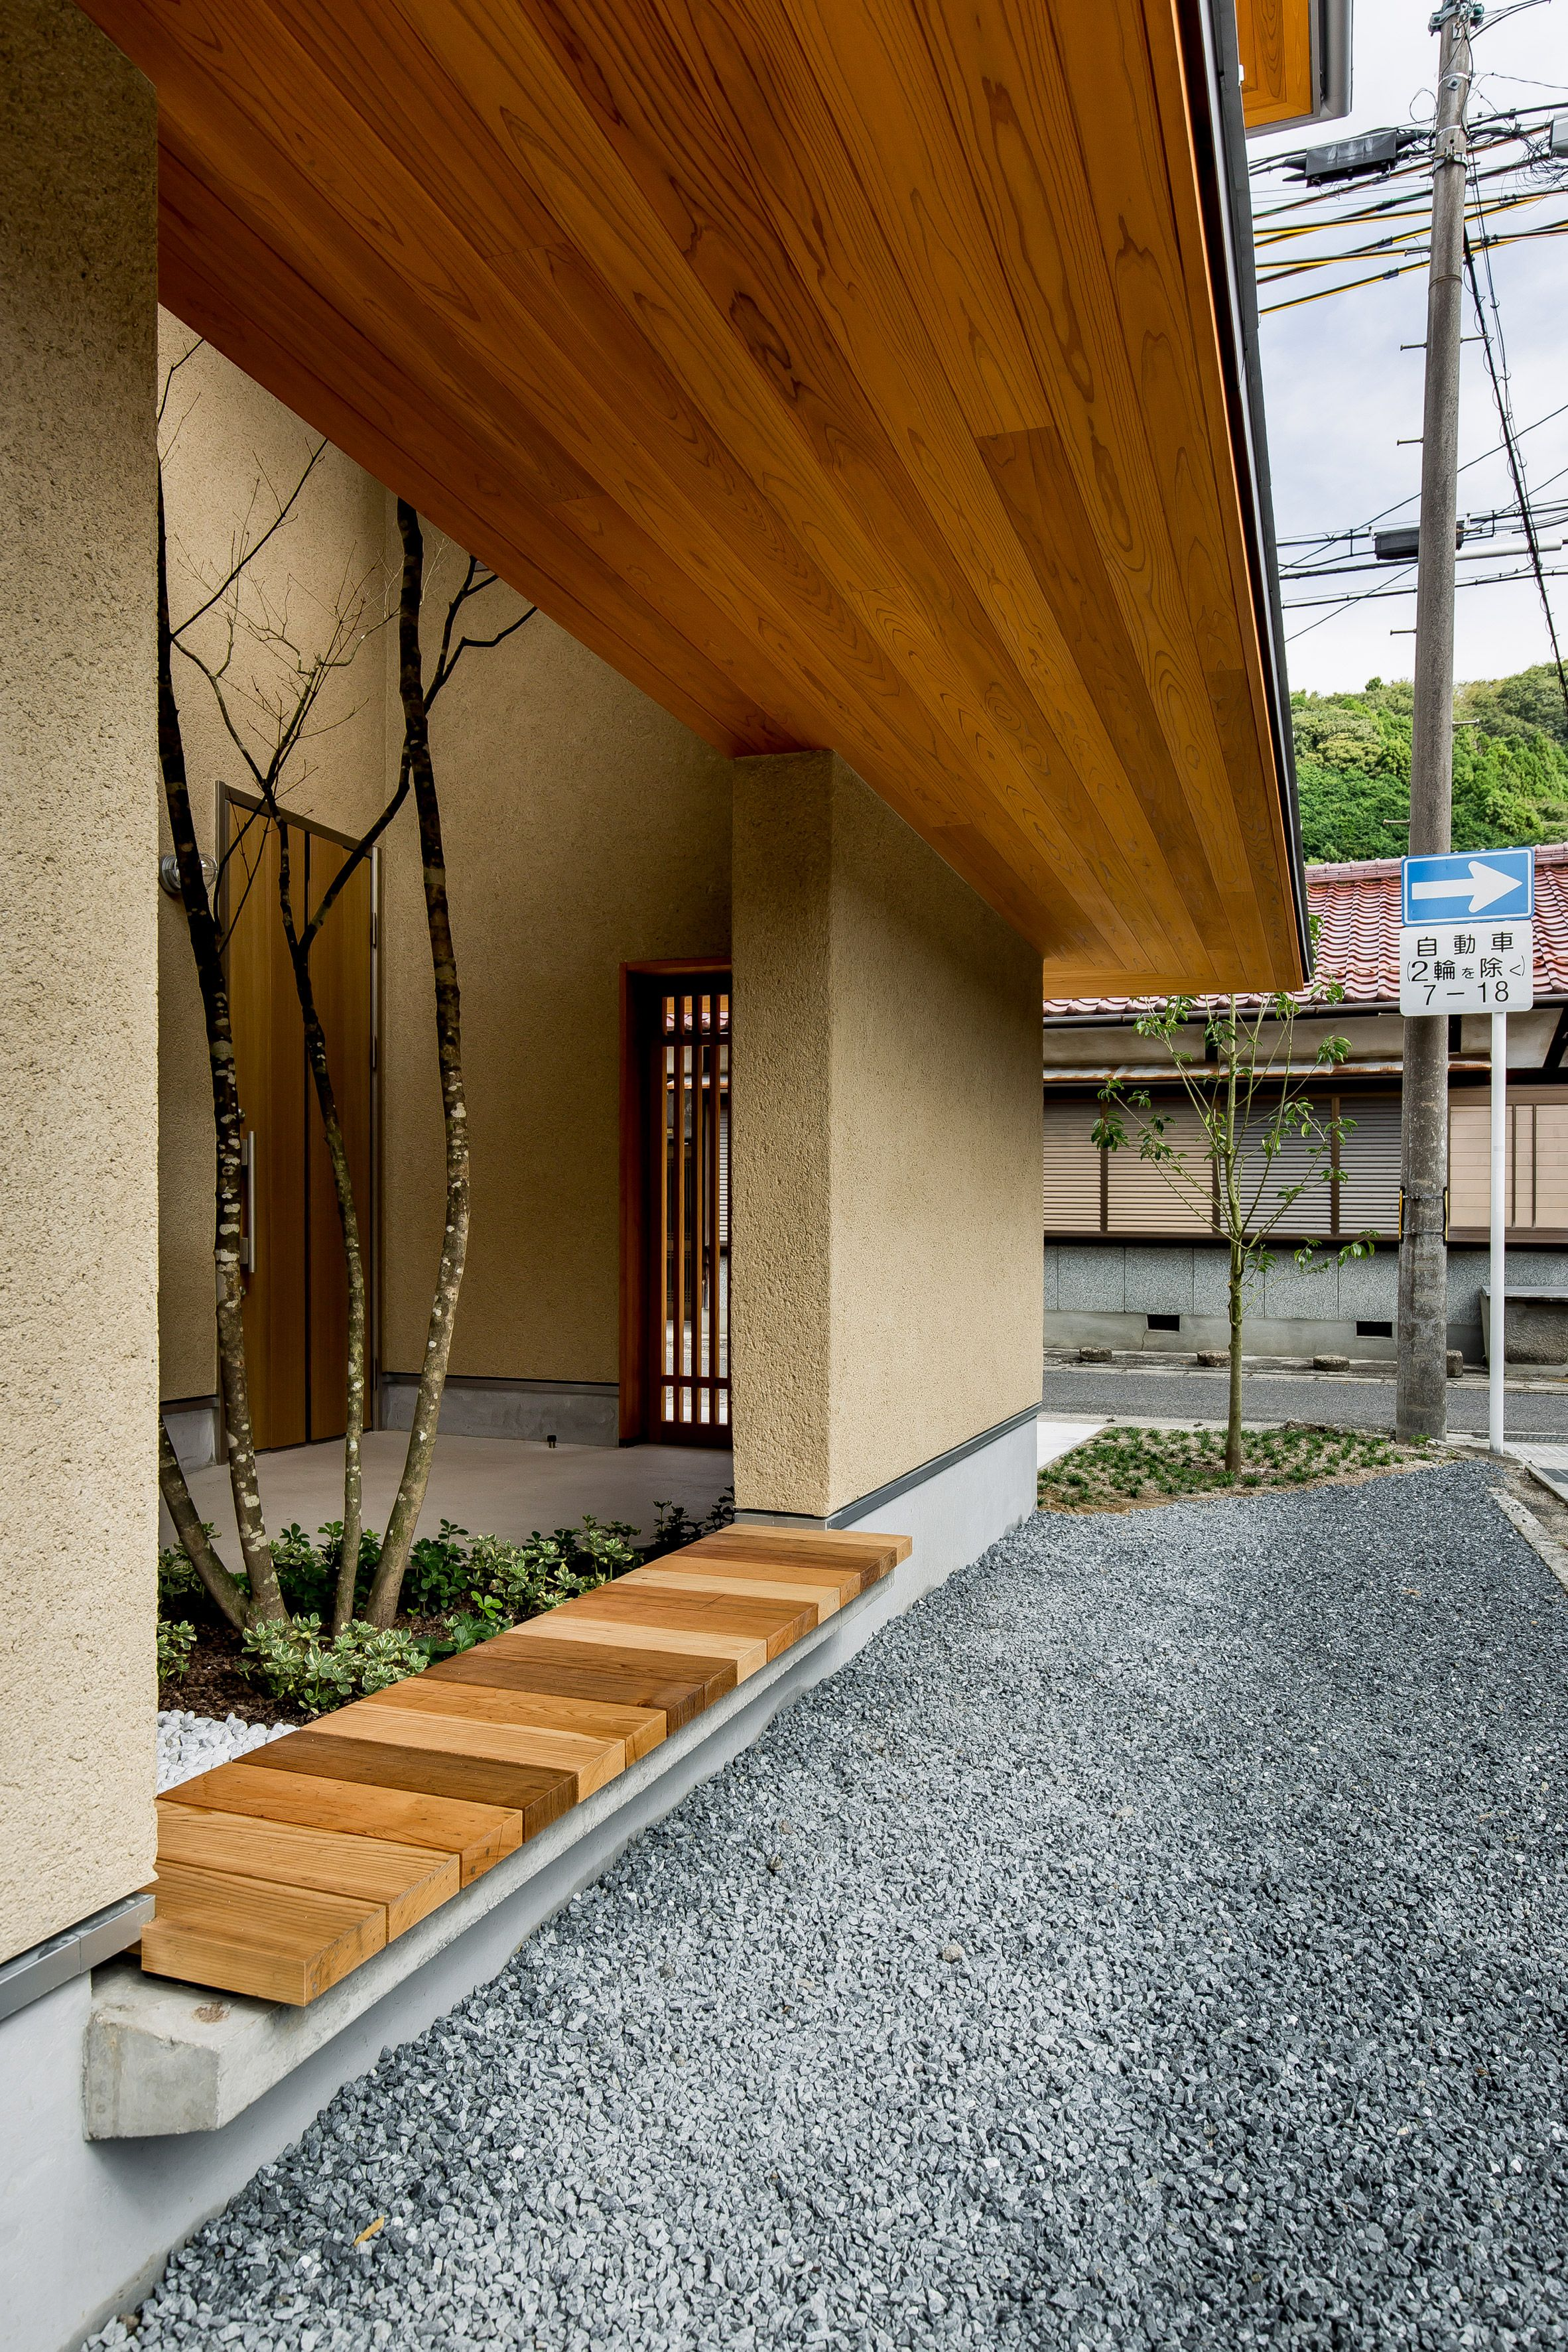 Kyomachi House Is Located In Koga, A City In The Southern Part Of The Shiga  Prefecture. The Residence Is Set Within The Former Boundary Of The Town Of  ...